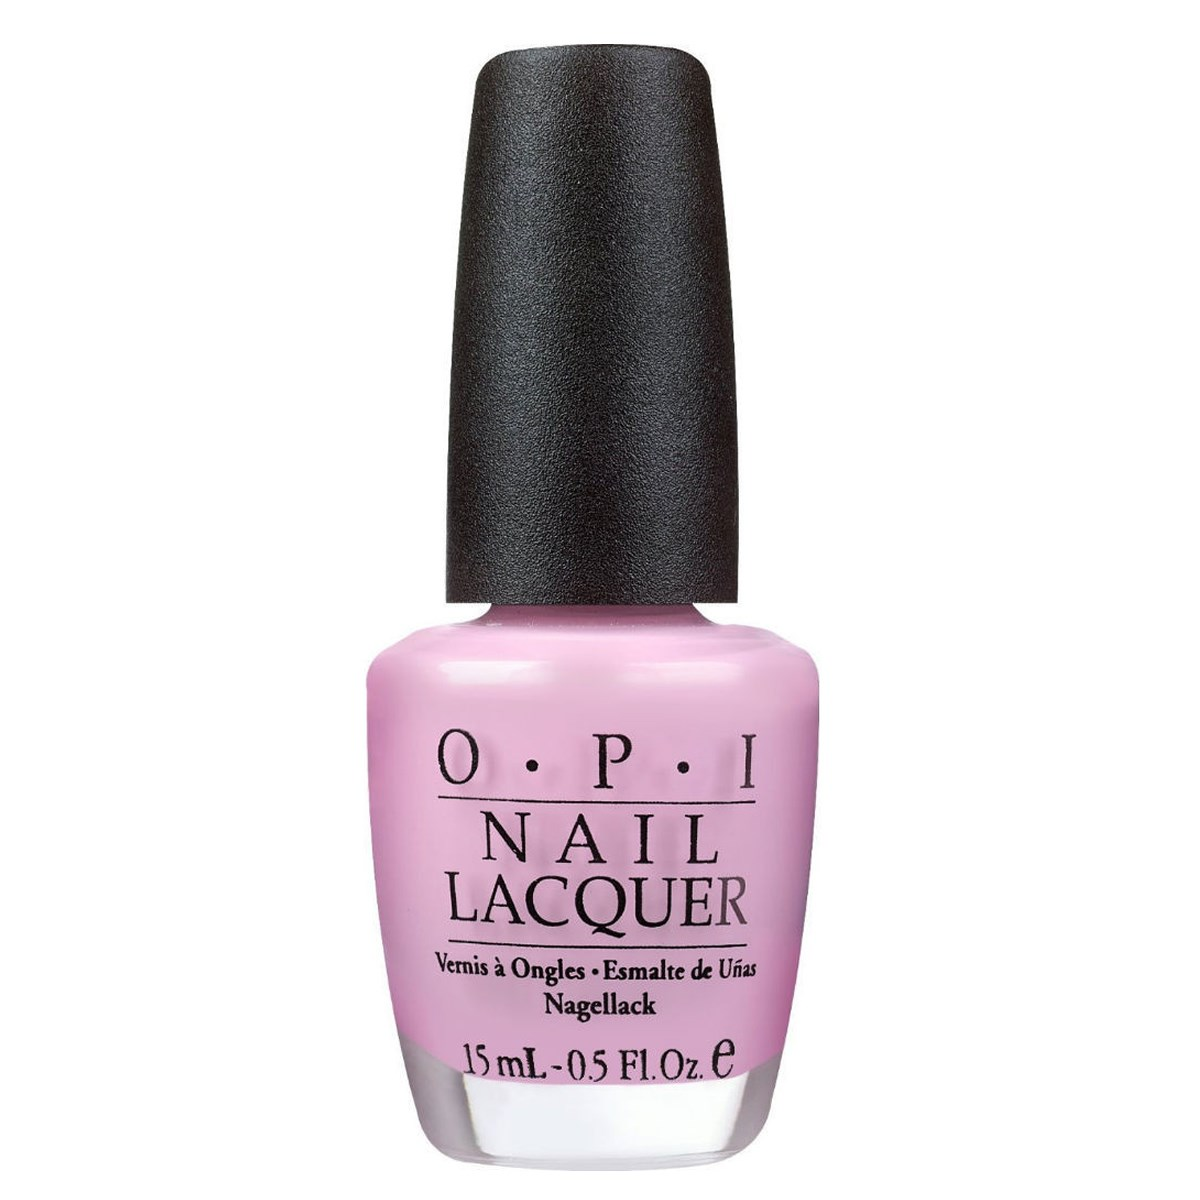 OPI Classic Nail Lacquer Mod About You